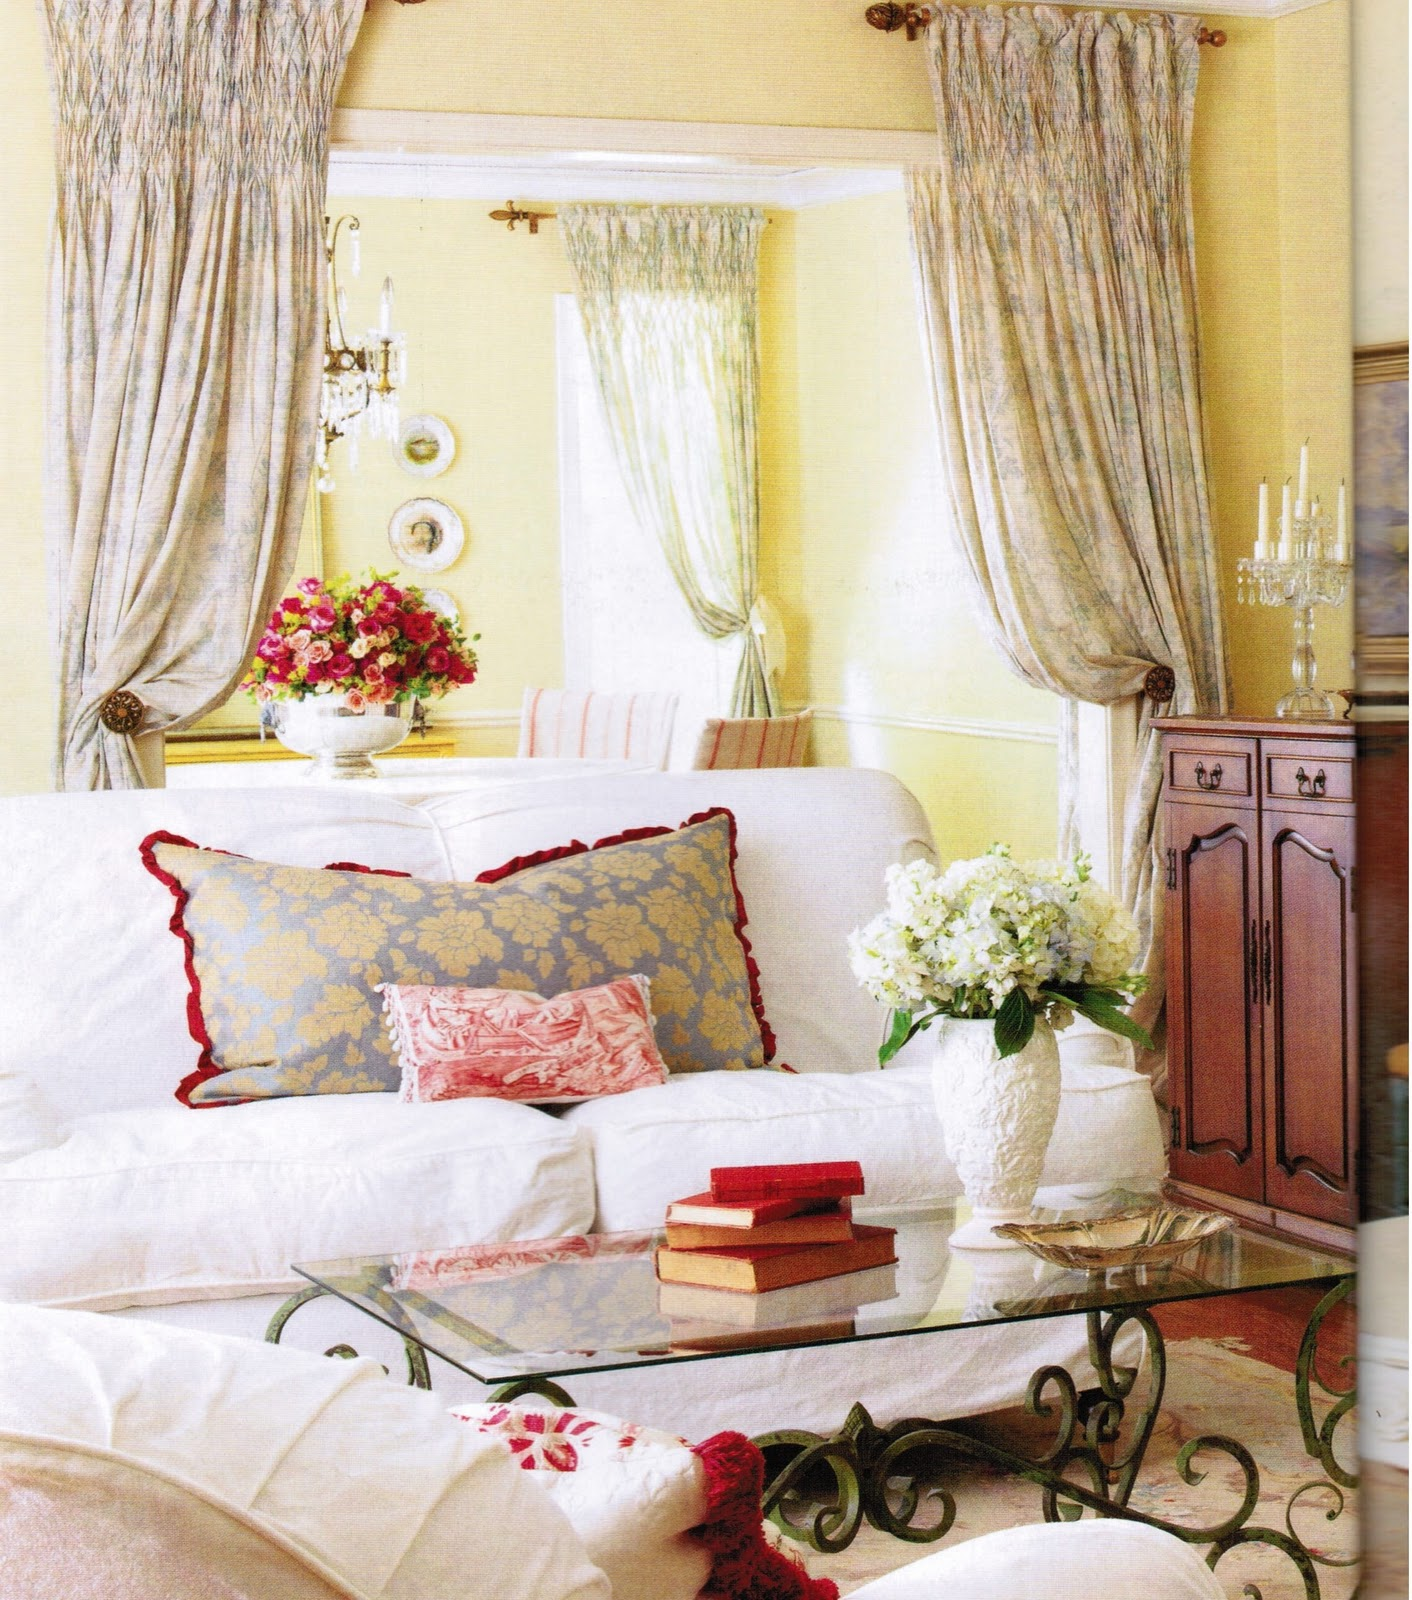 Pinterest Country Home Decorating Ideas: Maison Decor: French Country: Enchanting Yellow & White